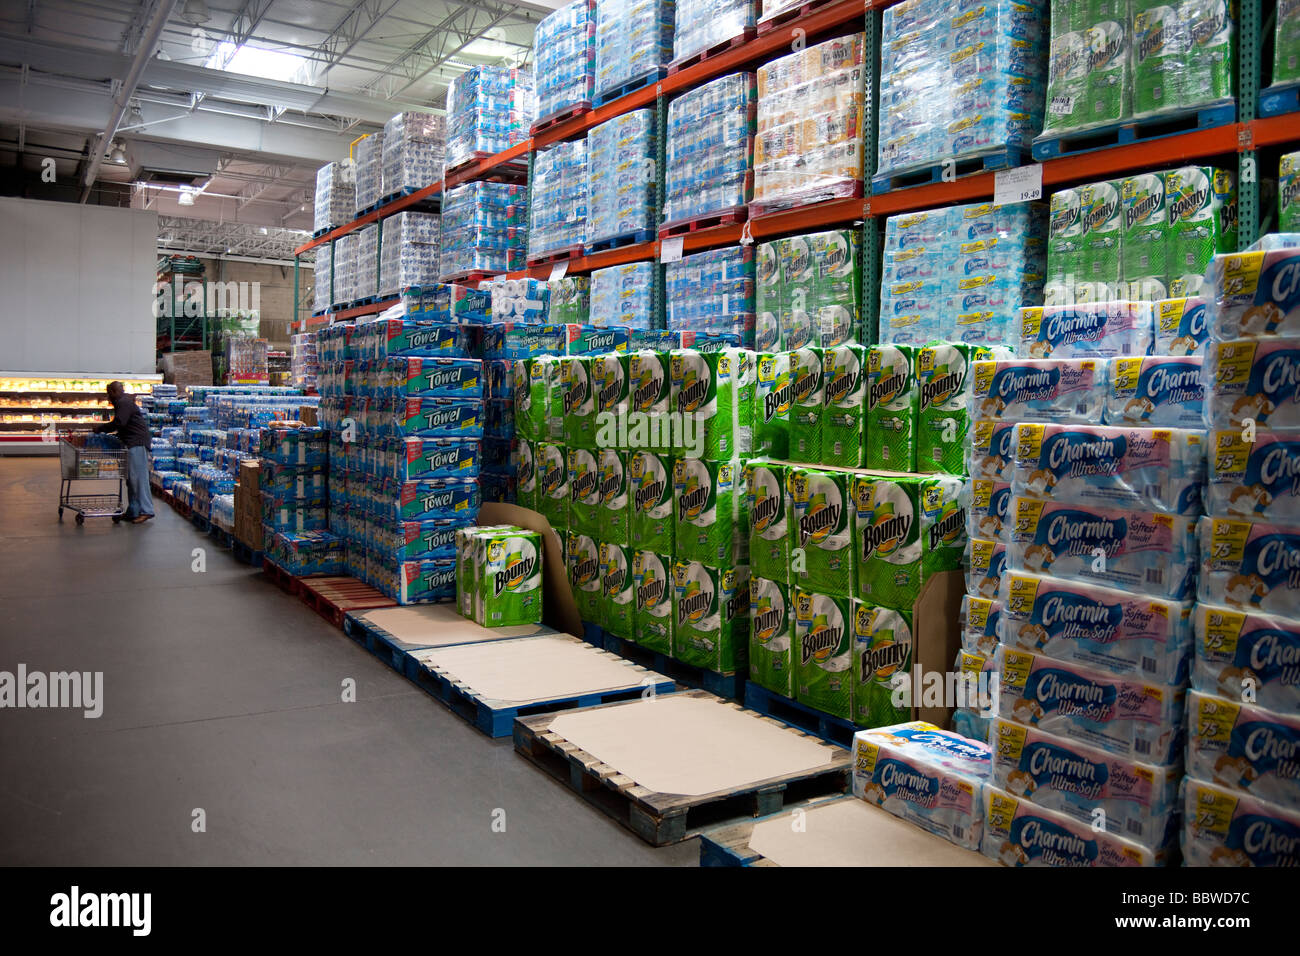 Kitchen Towels And Bottled Water Stacks Costco Warehouse